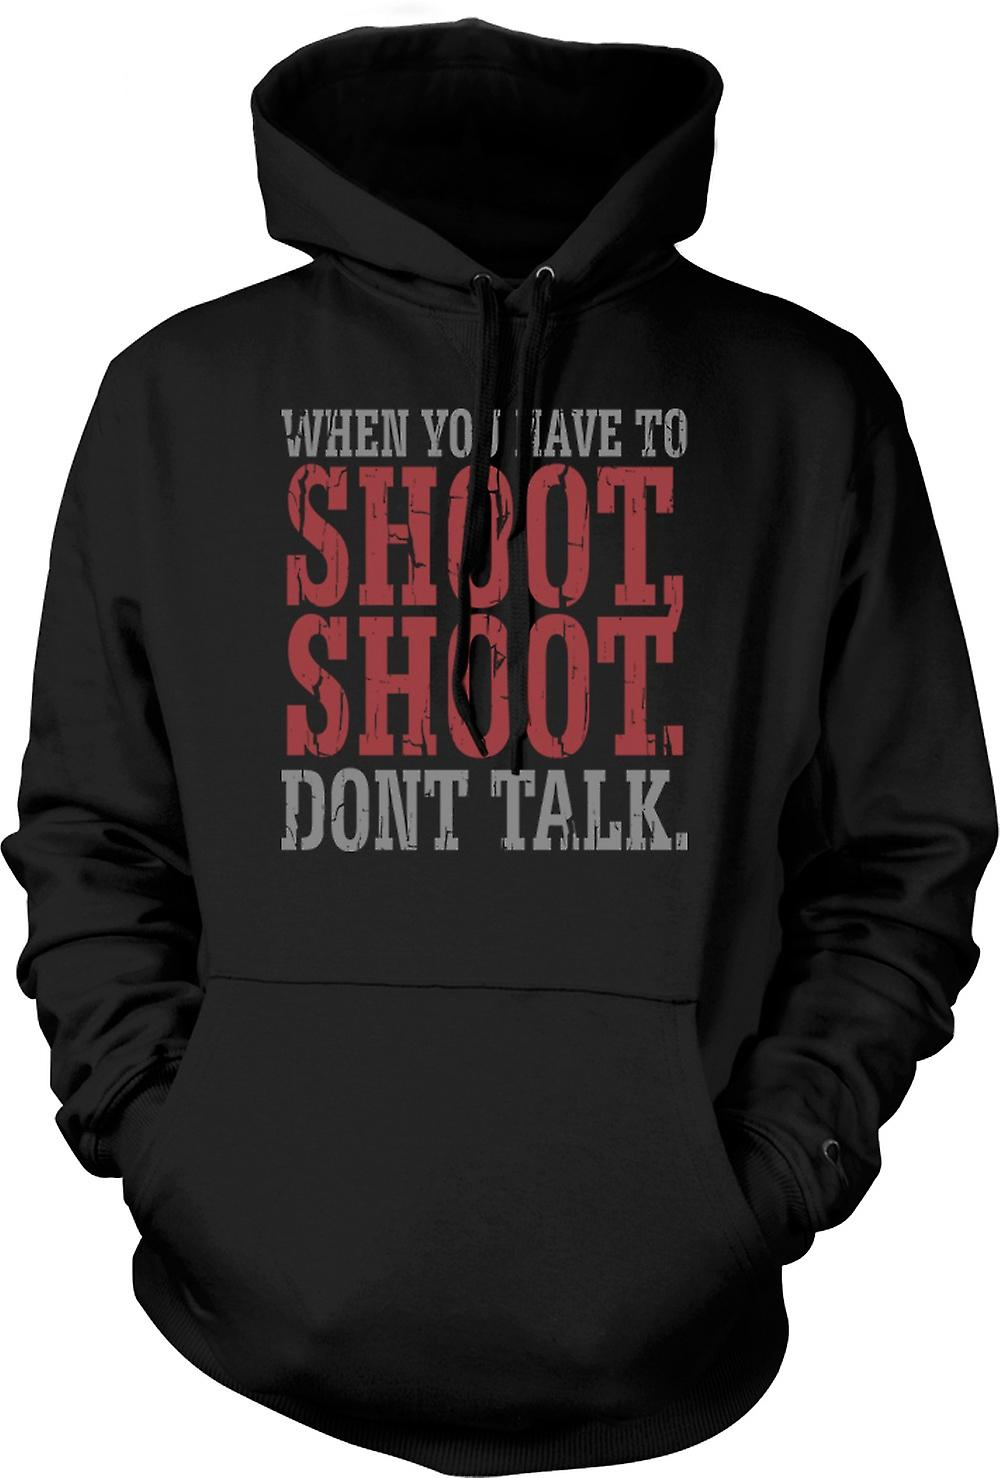 Kids Hoodie - When you have to shoot - Funny Quote